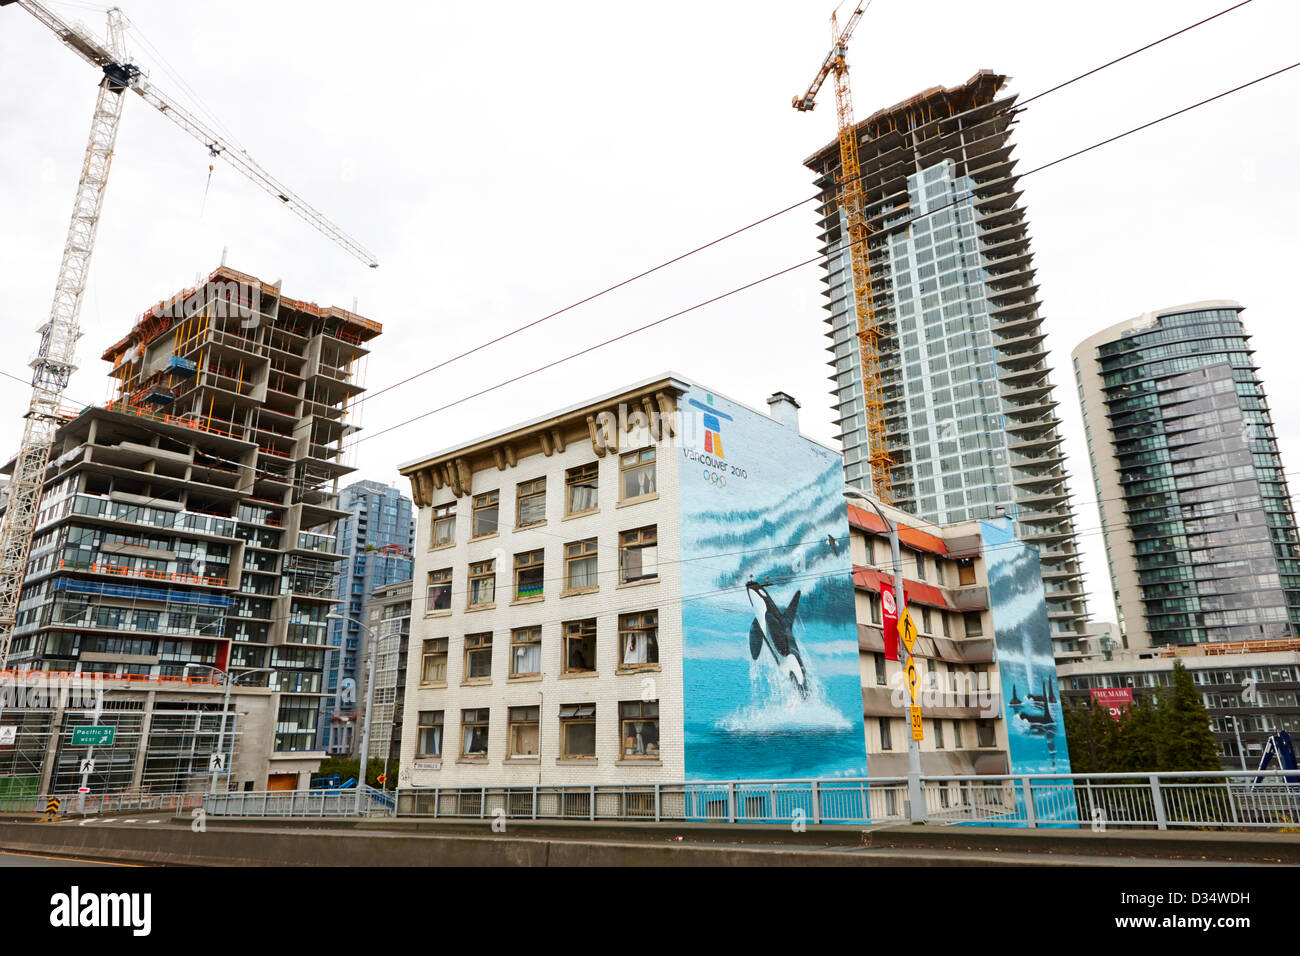 wyland orcas mural on old continental hotel in front of the mark new condo project granville street yaletown Vancouver - Stock Image